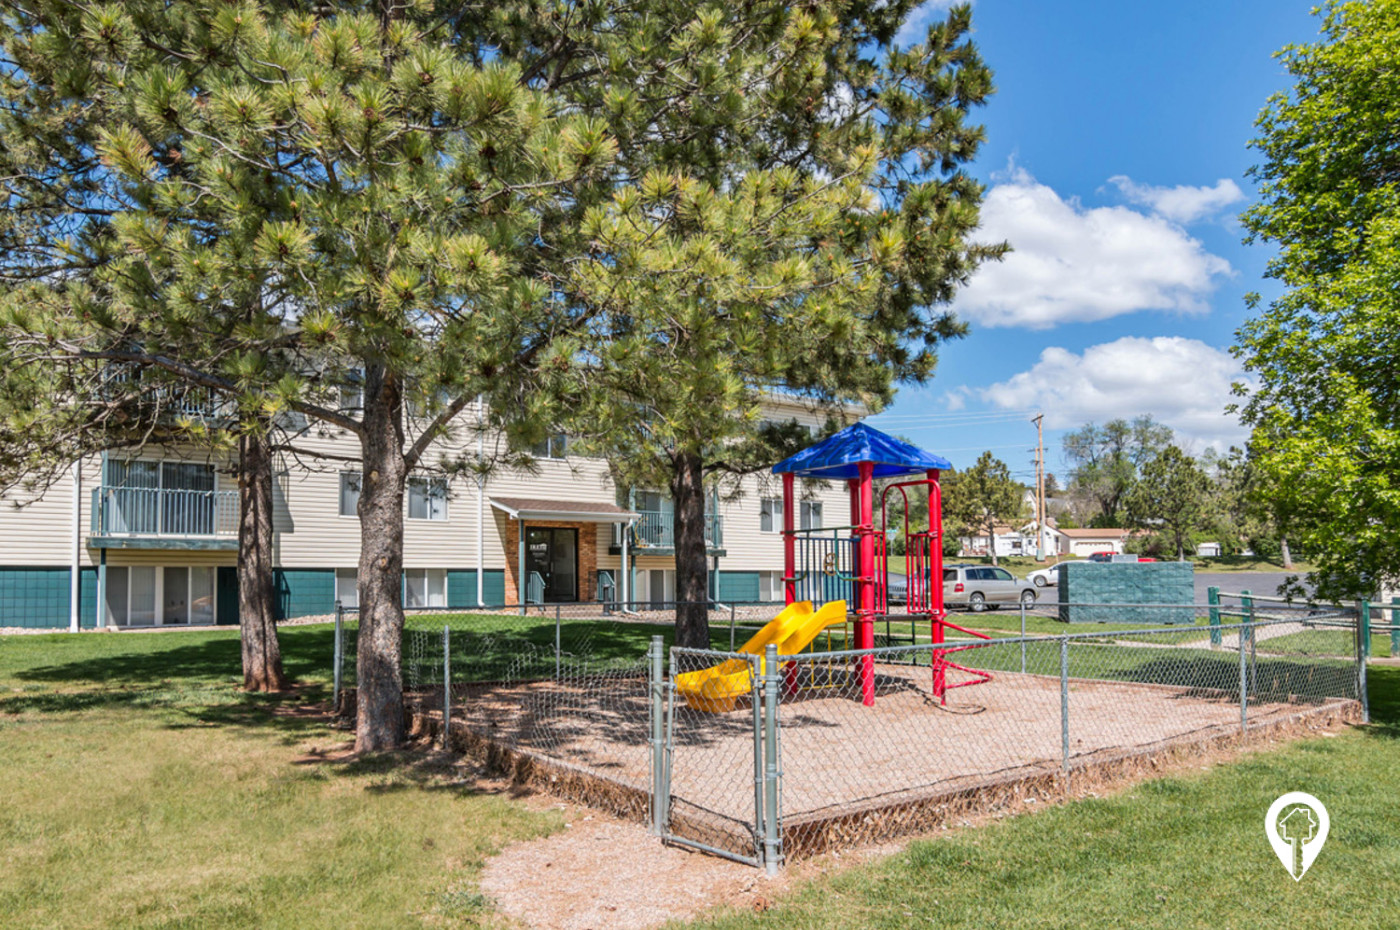 Canyon-Lake-Apartments-A-Great-Community-Play-Area